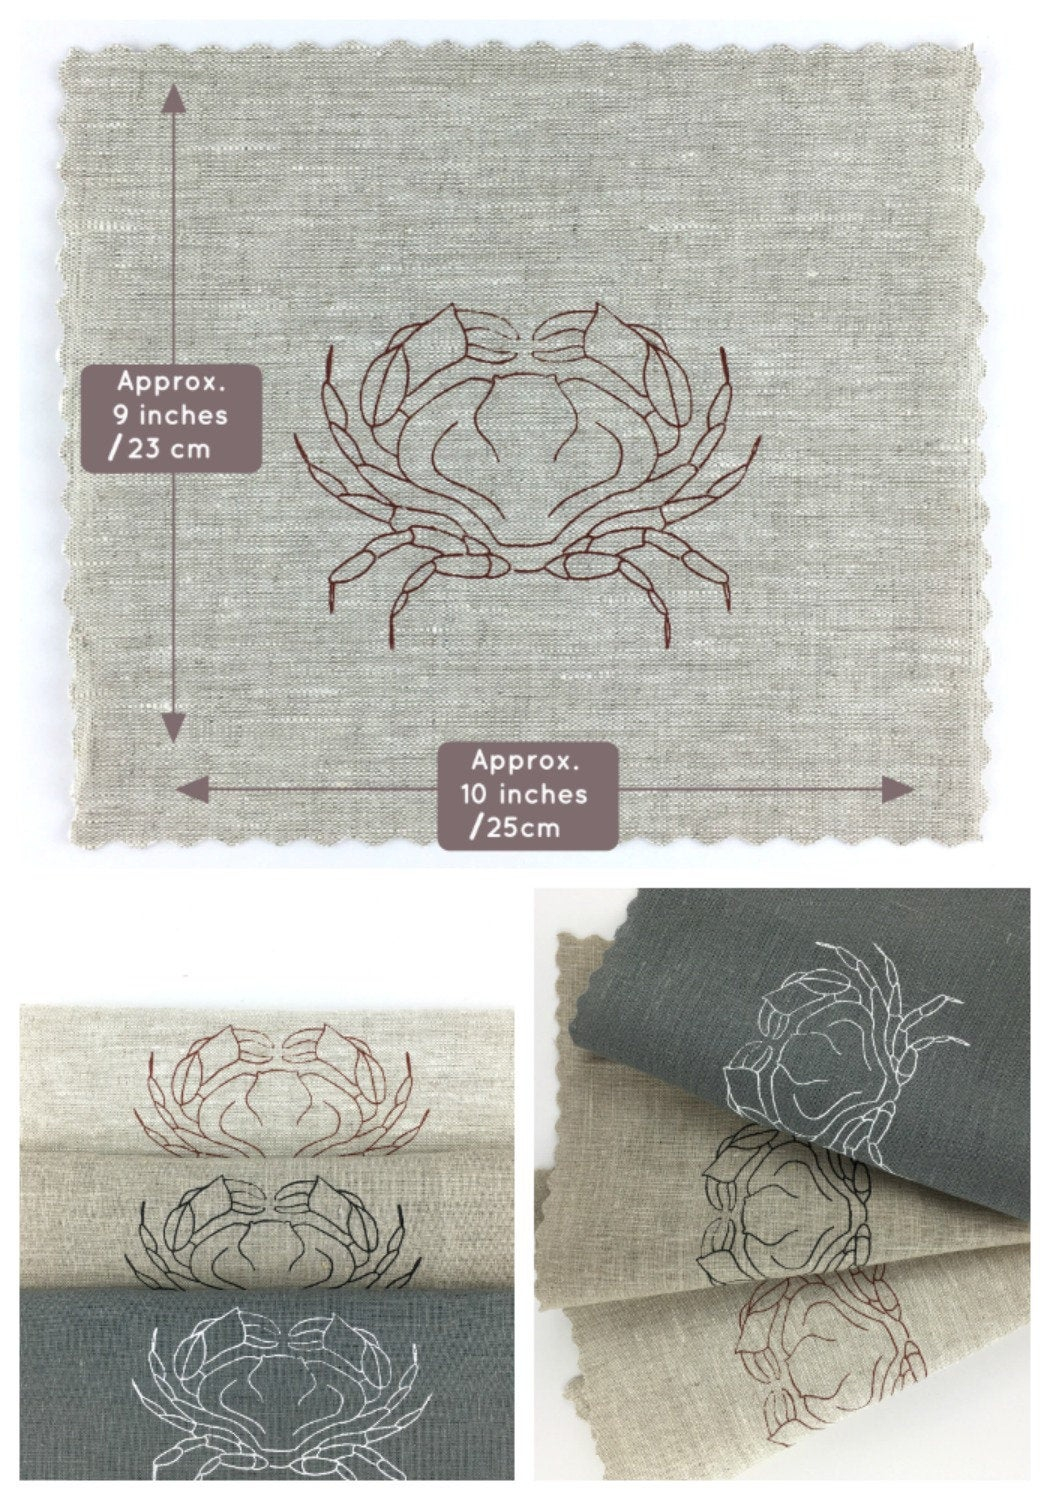 Stamped Embroidery Patterns Printed Embroidery Pattern Hand Embroidery Pattern On Fabric